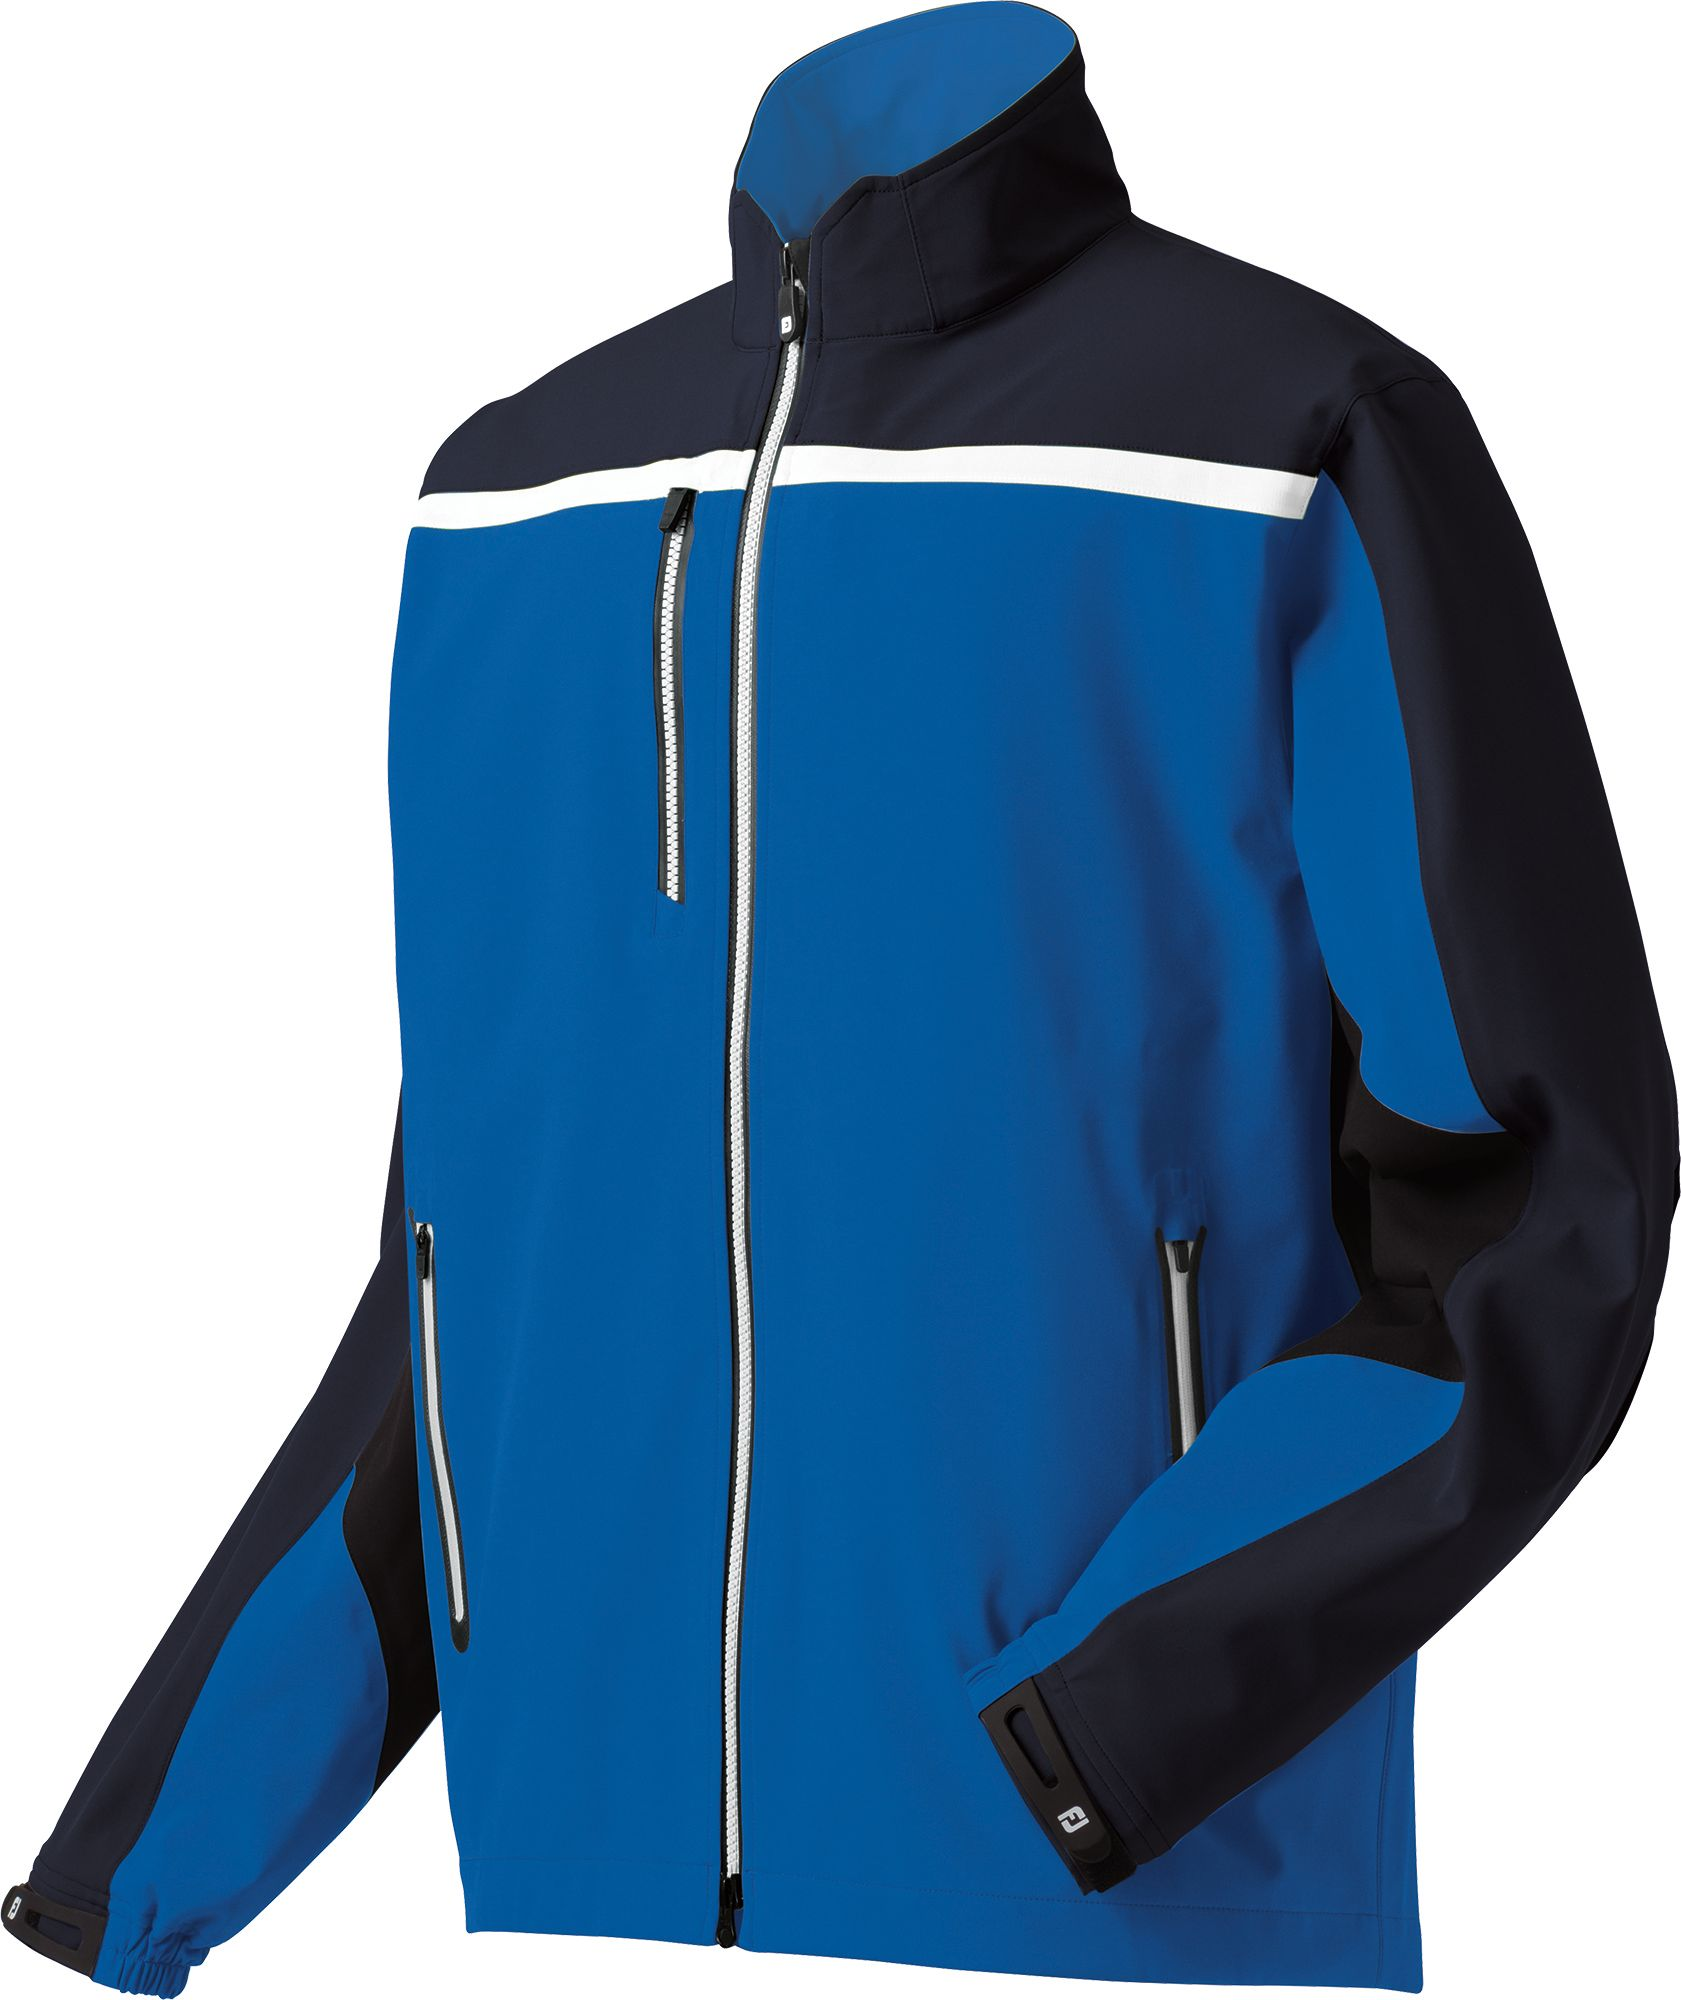 FootJoy Men's DryJoys Tour XP Golf Rain Jacket | DICK'S Sporting Goods